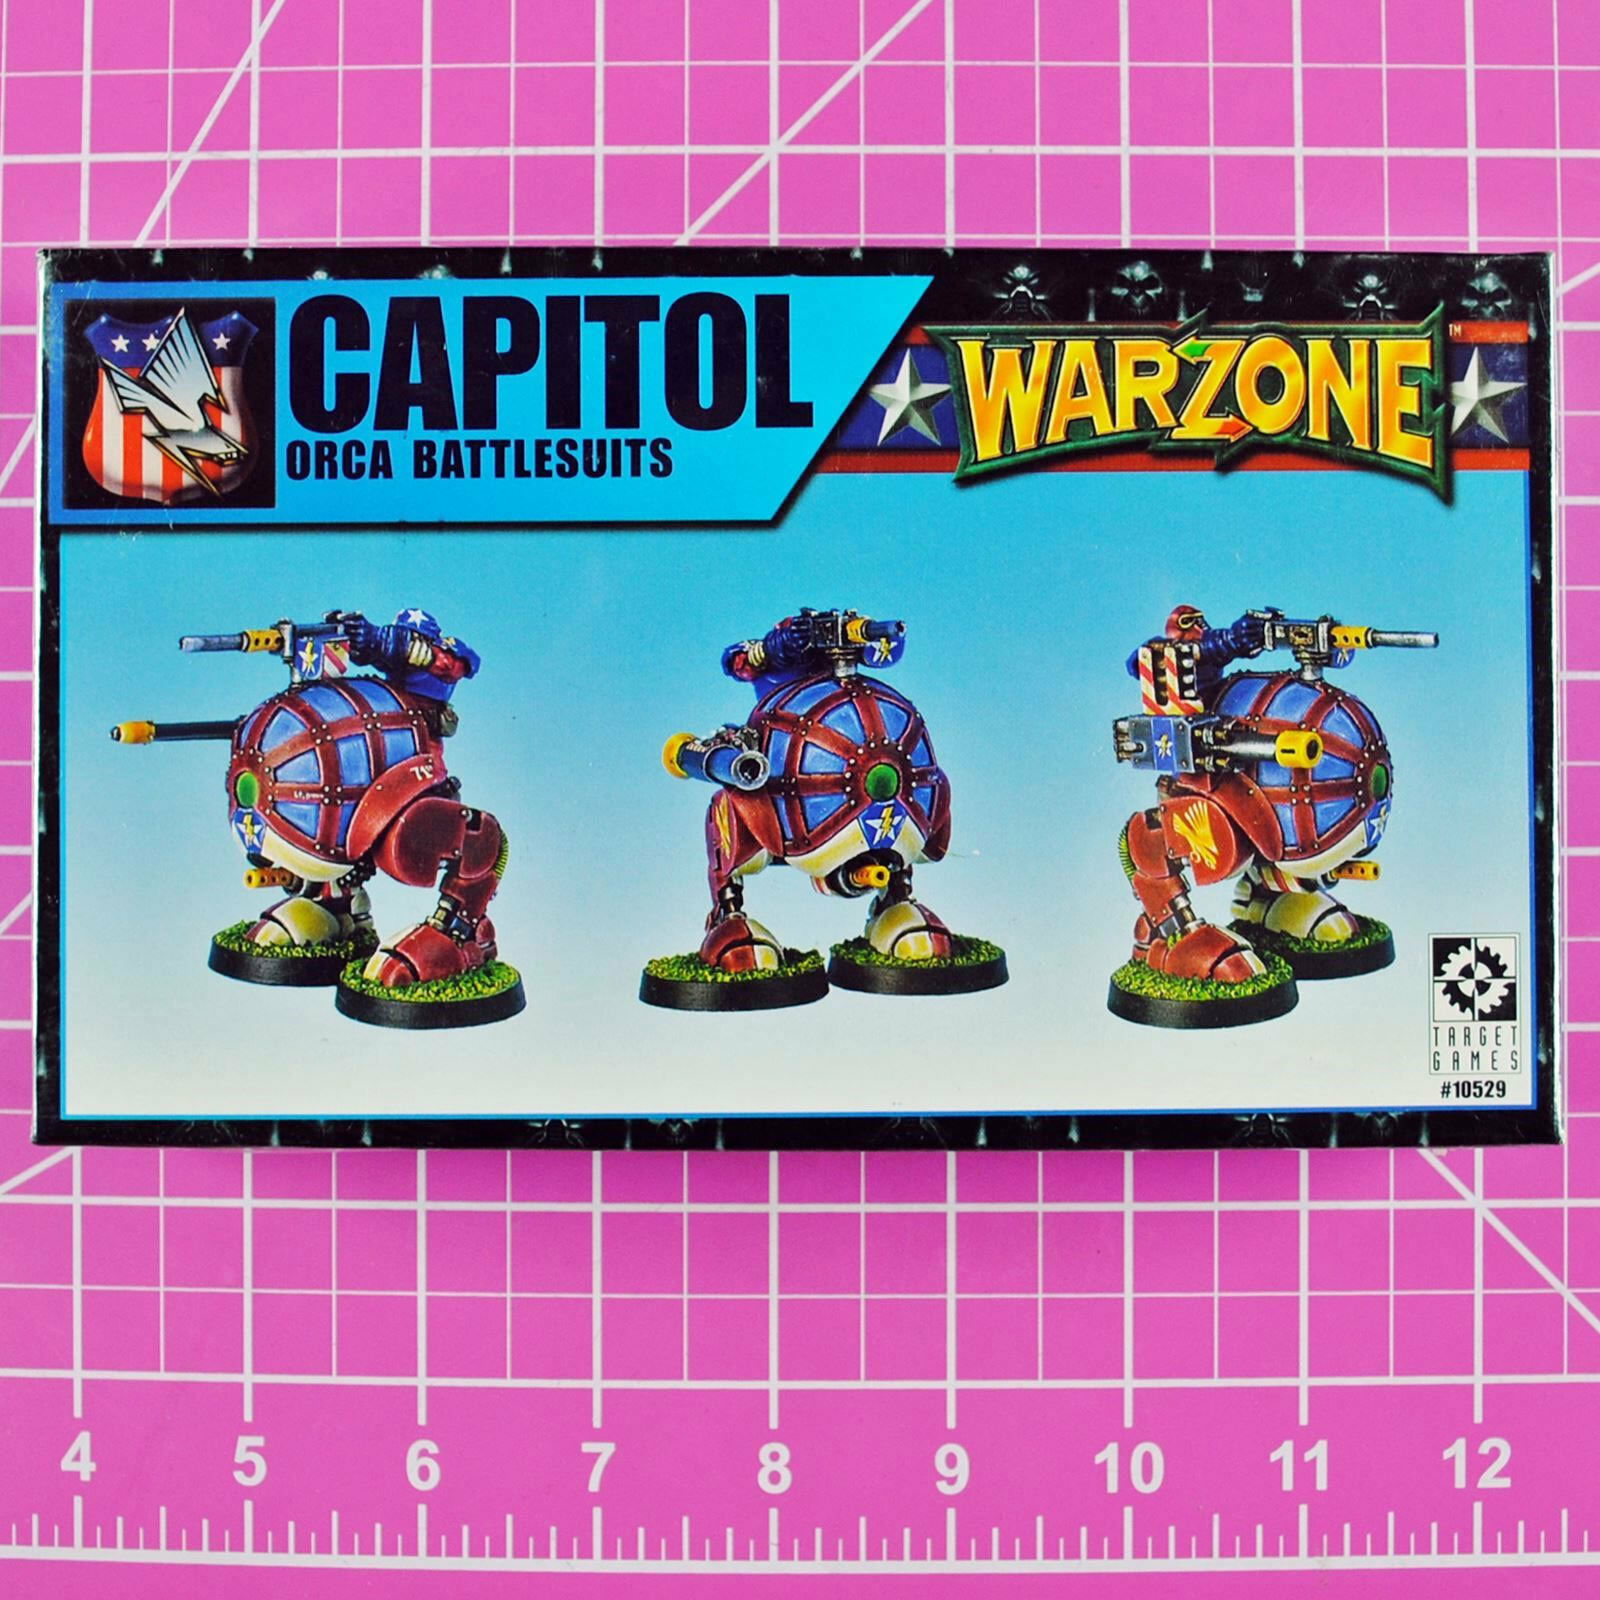 Warzone Mutant Chronicles Capitol Orca Battlesuits (Rare) - Target Games Walkers